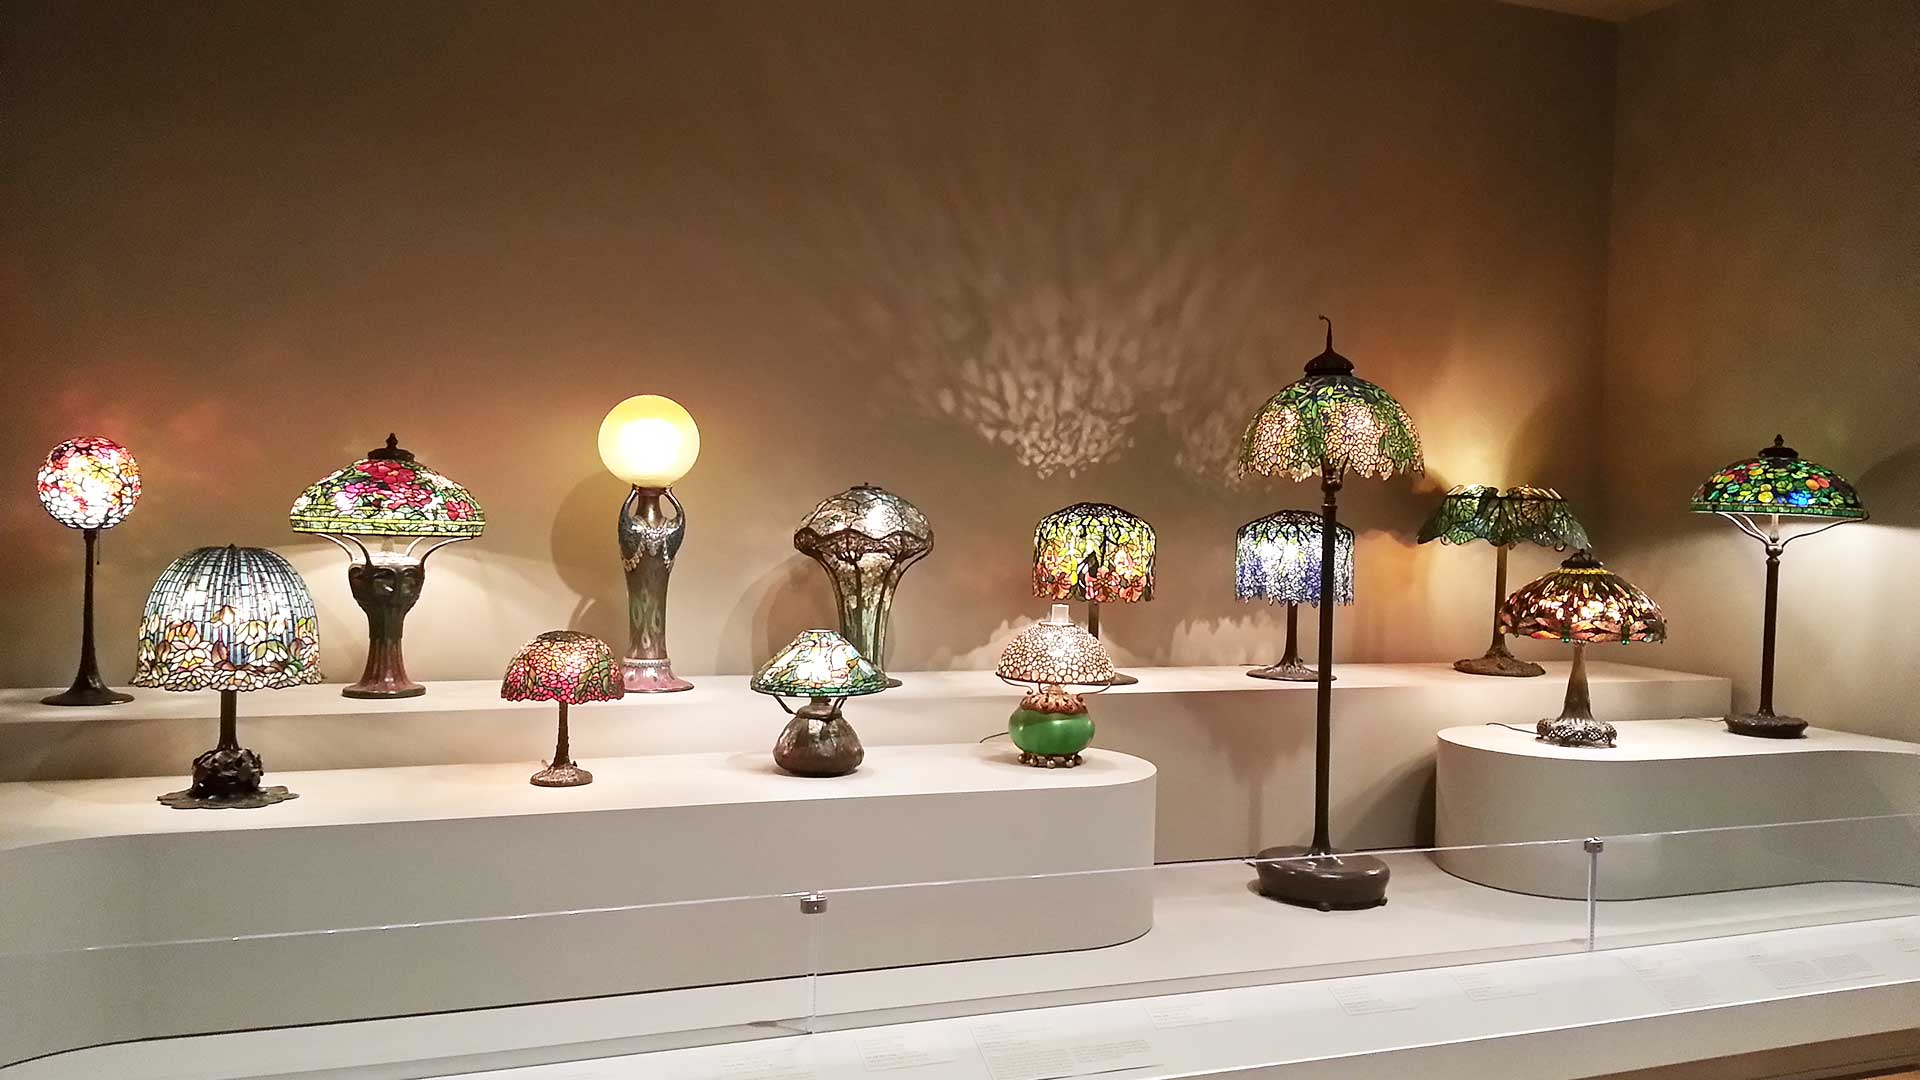 A range of Tiffany lamps in small and large sizes having different colored stained glass patterns.